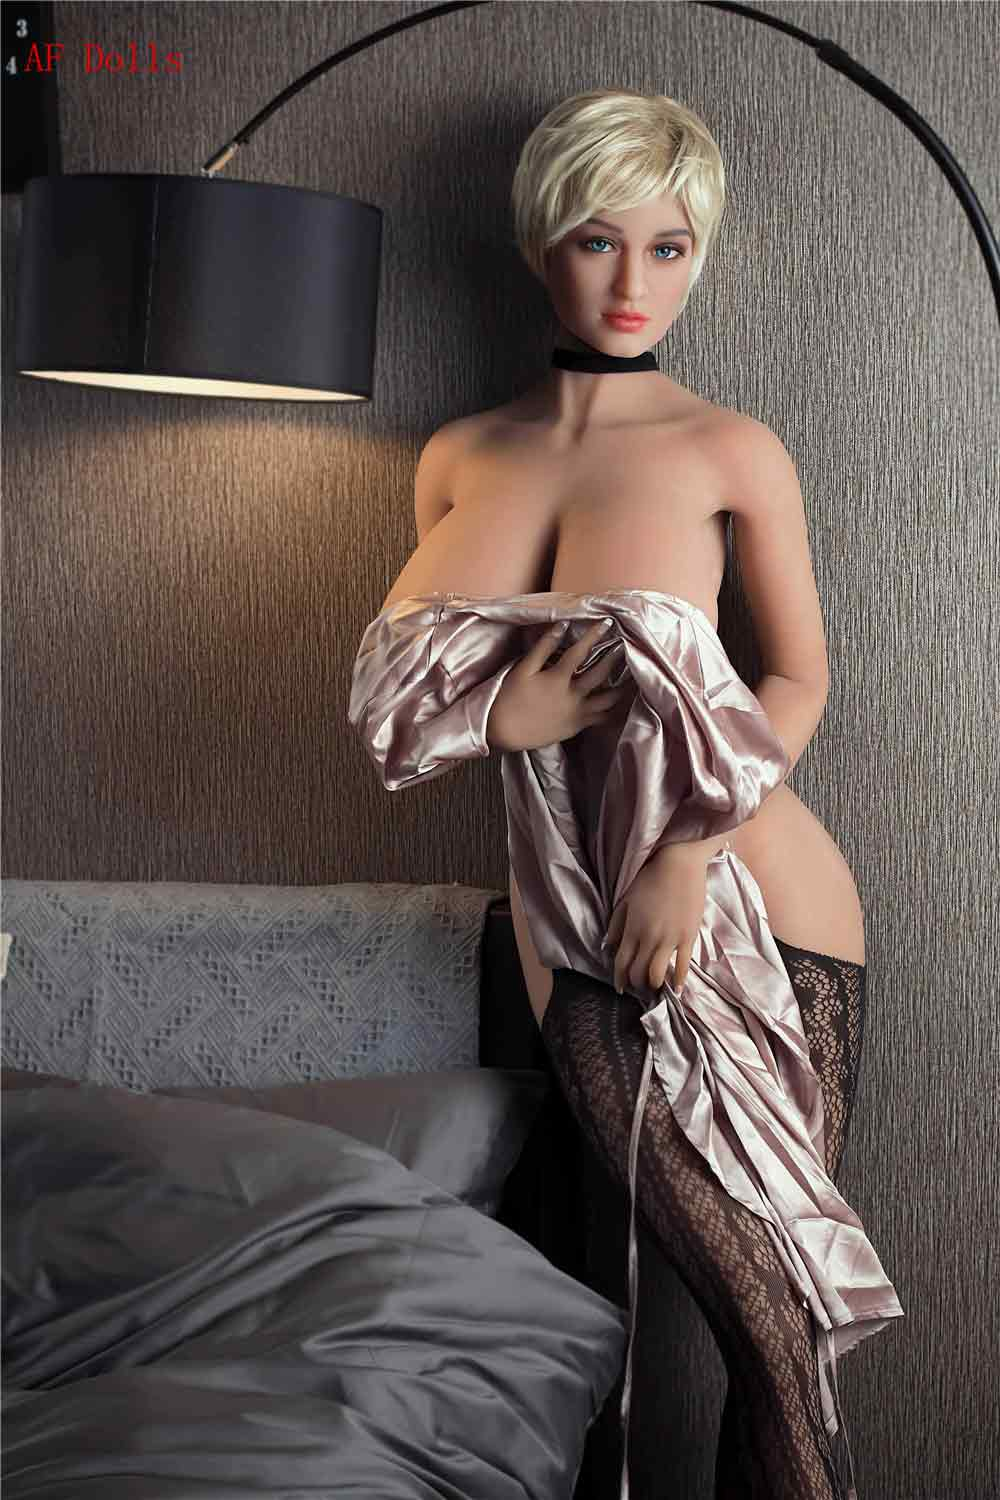 Big breasted sex doll with pajamas taken off